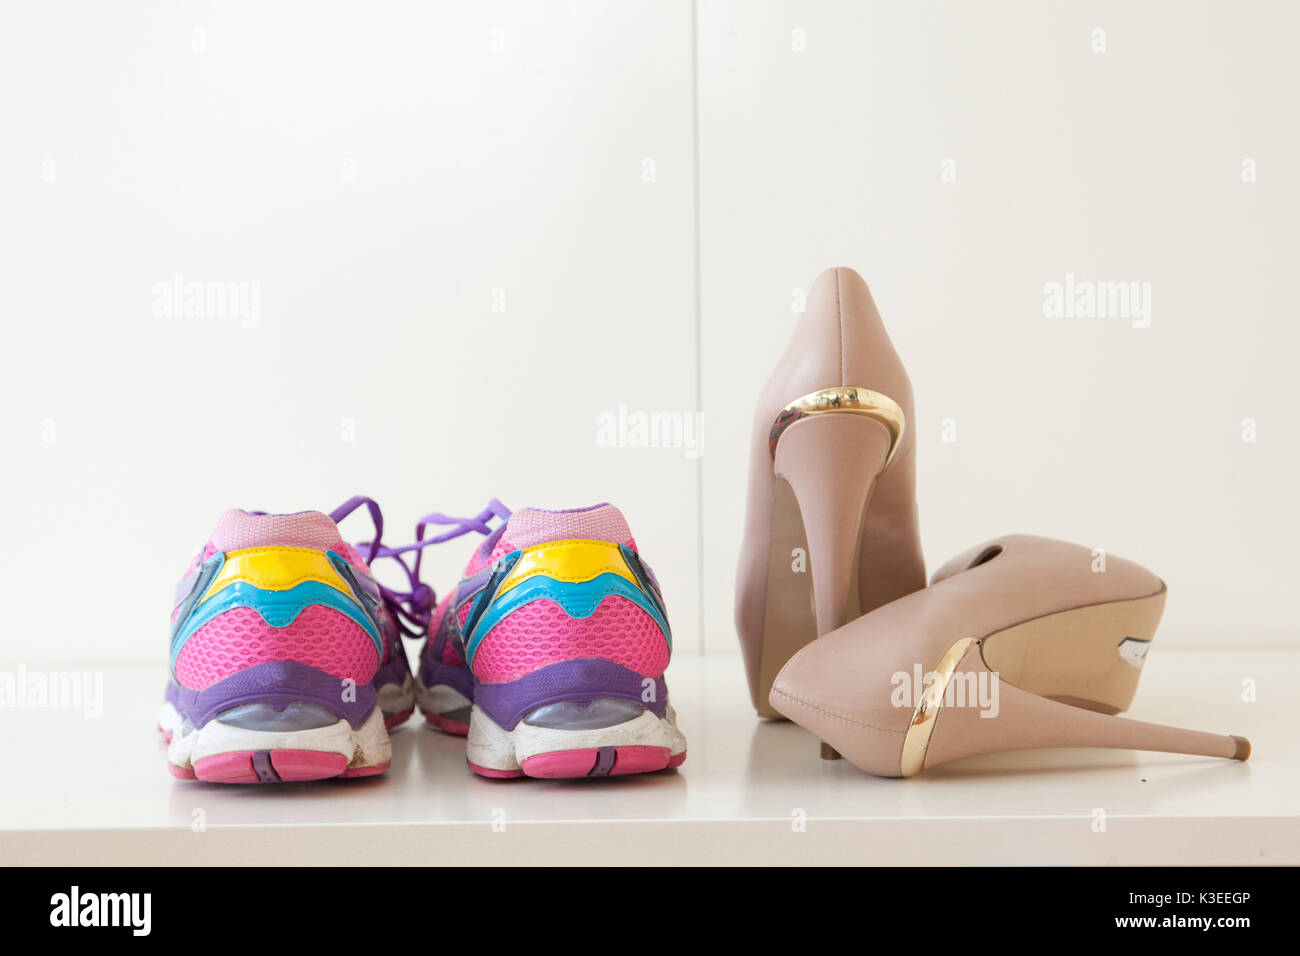 5477c59ef555 A pair of colorful sports shoes next to high heel stilettos Stock ...